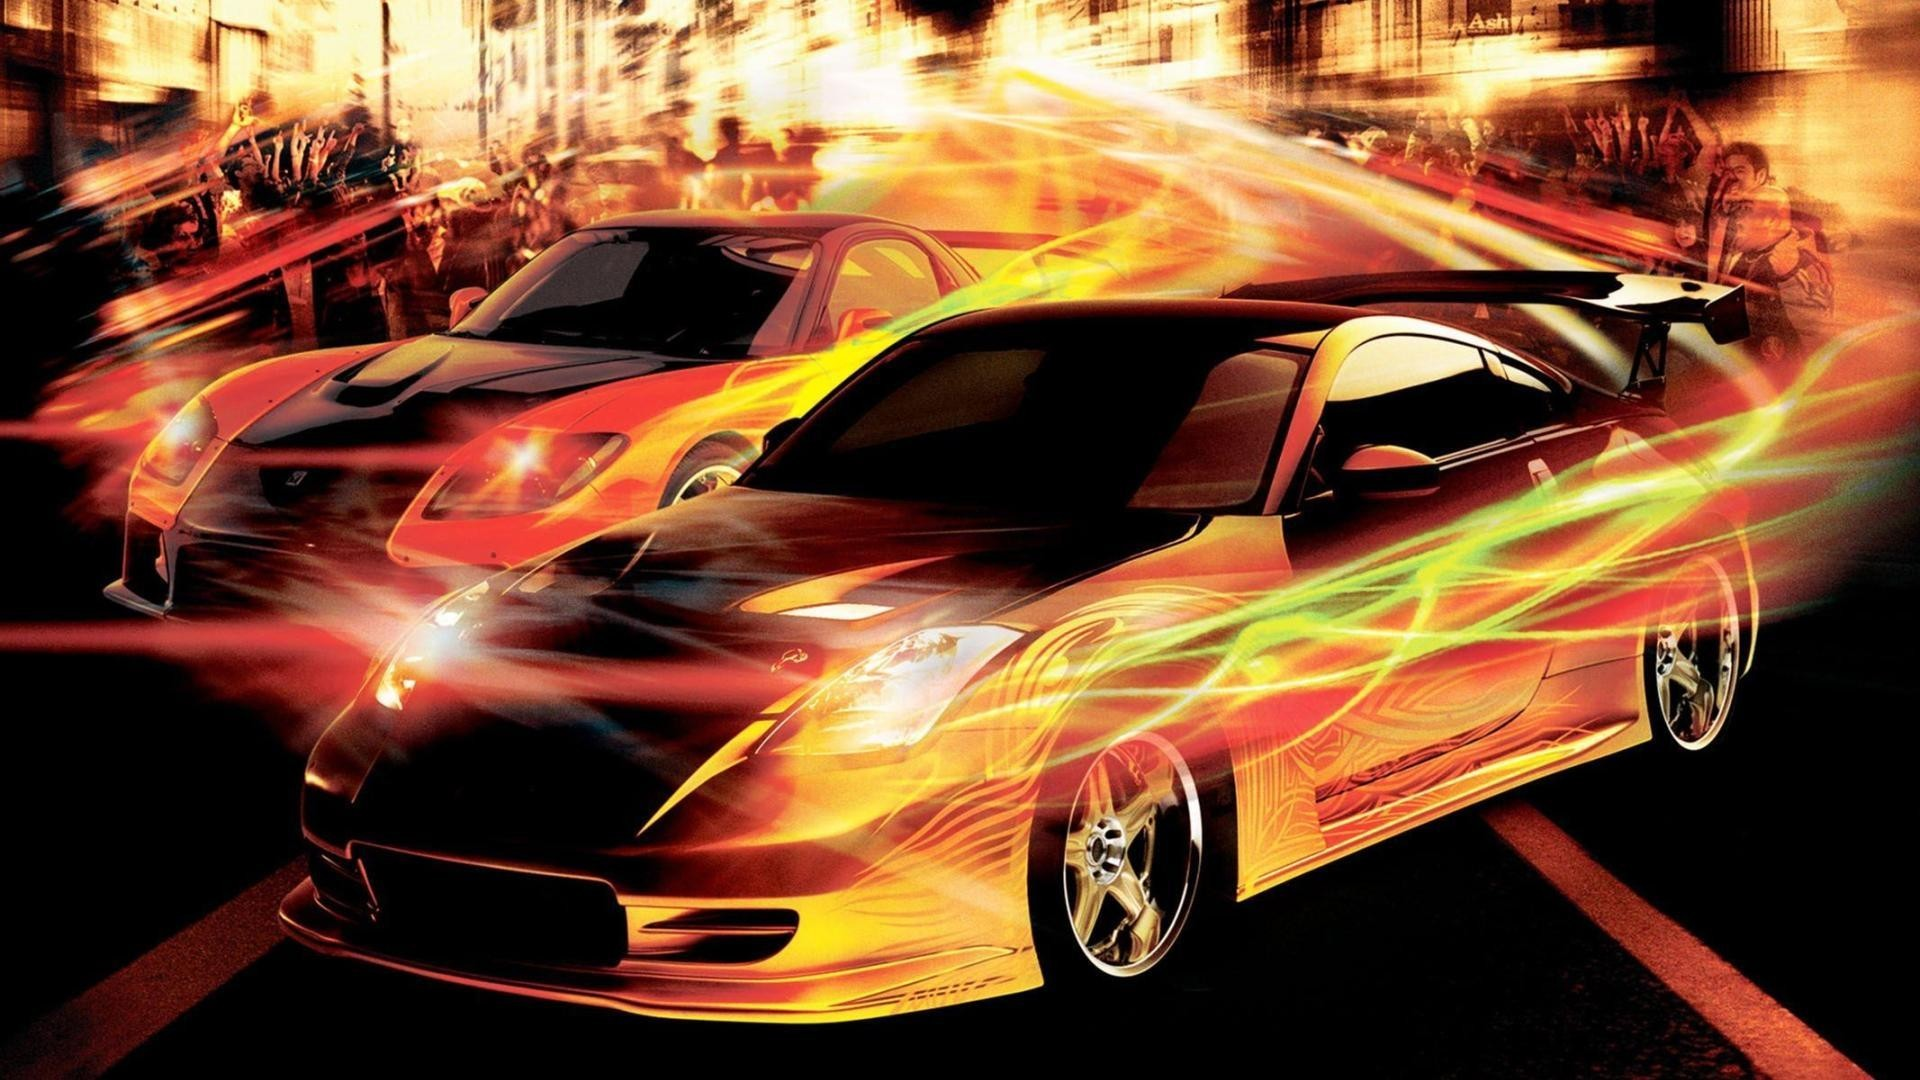 FAST AND THE FURIOUS TOKYO DRIFT tuning wallpaper 1920x1080 102771 1920x1080